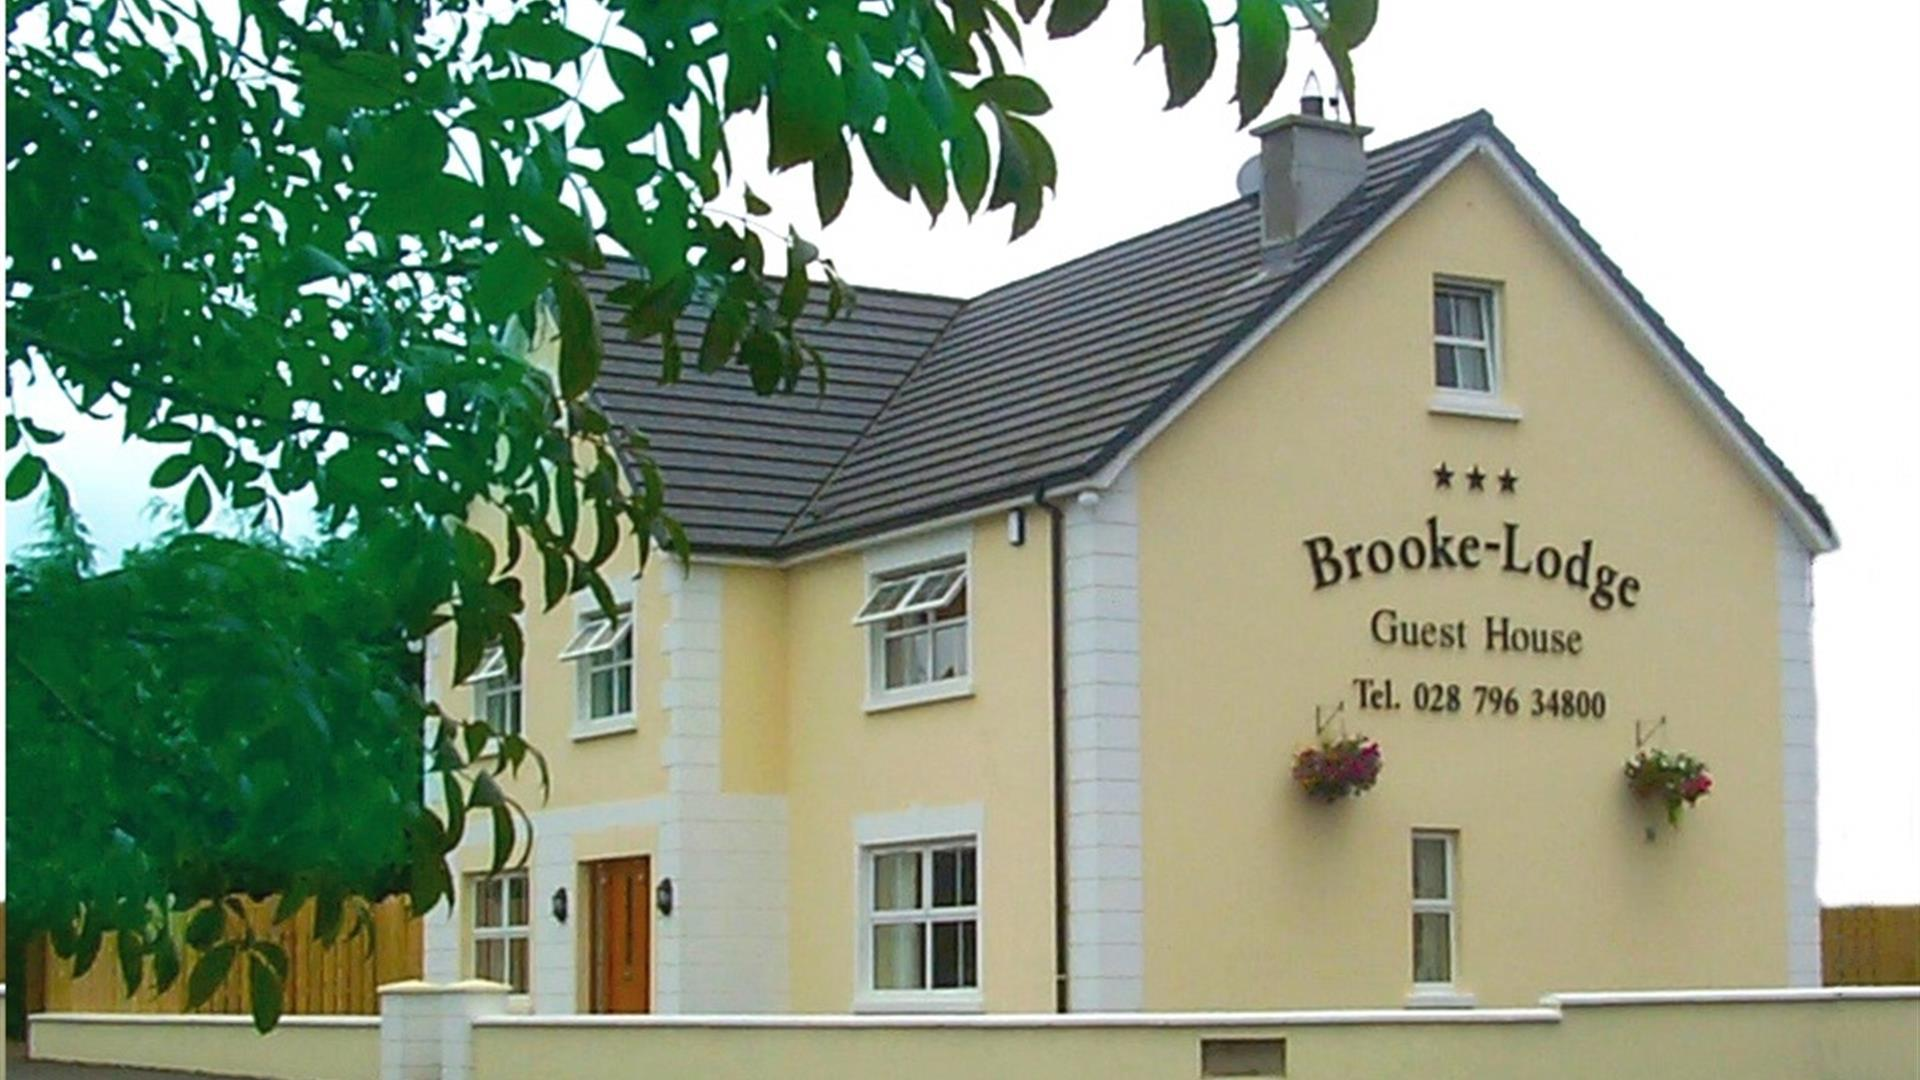 Brooke-Lodge Guesthouse